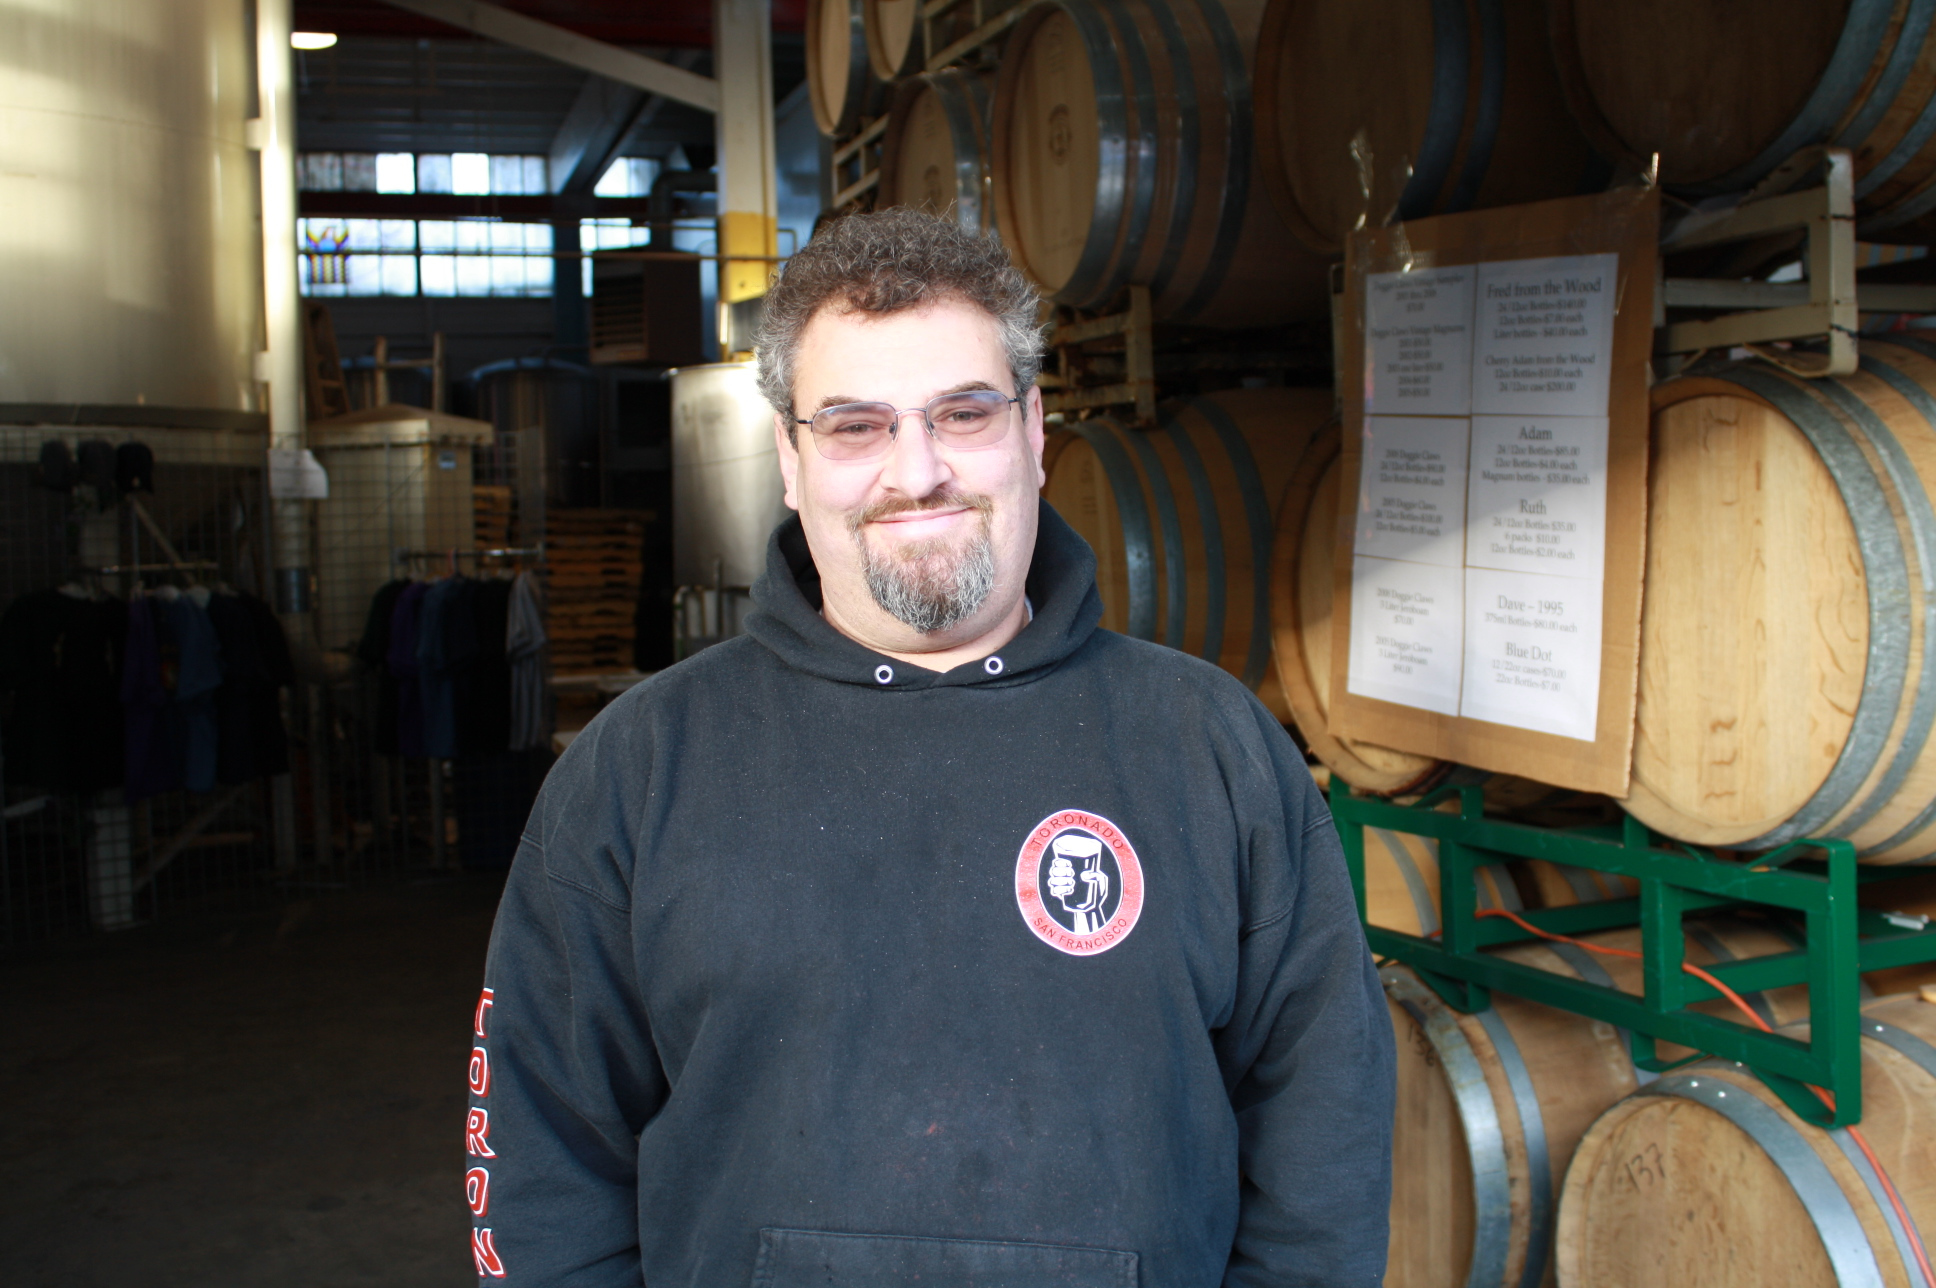 Brewmaster and founder Alan Sprints of Hair of the Dog Brewing